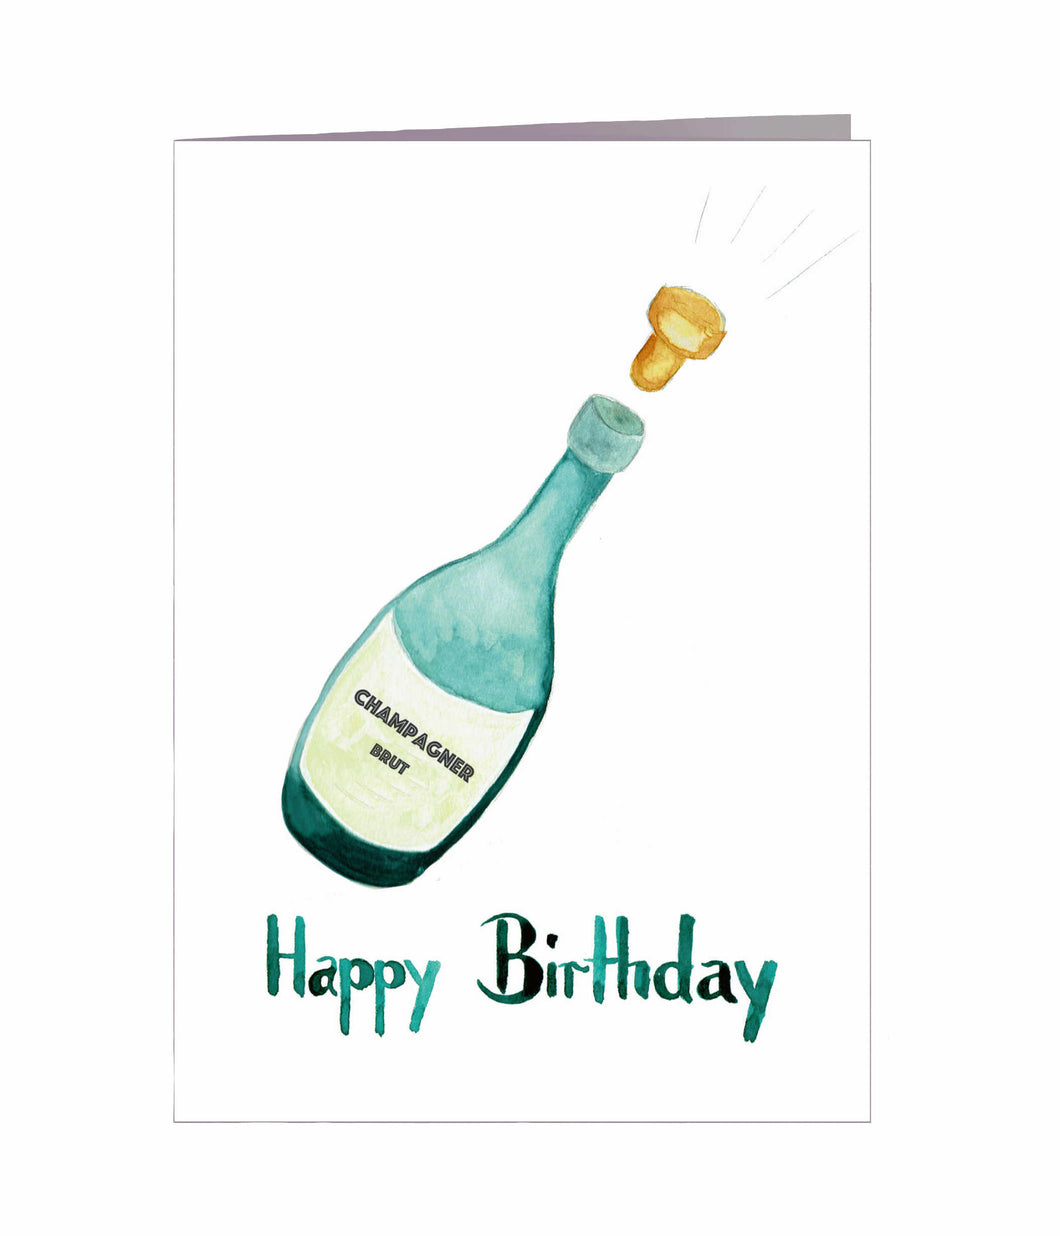 Geburtstagskarte | Happy Birthday | Champagner